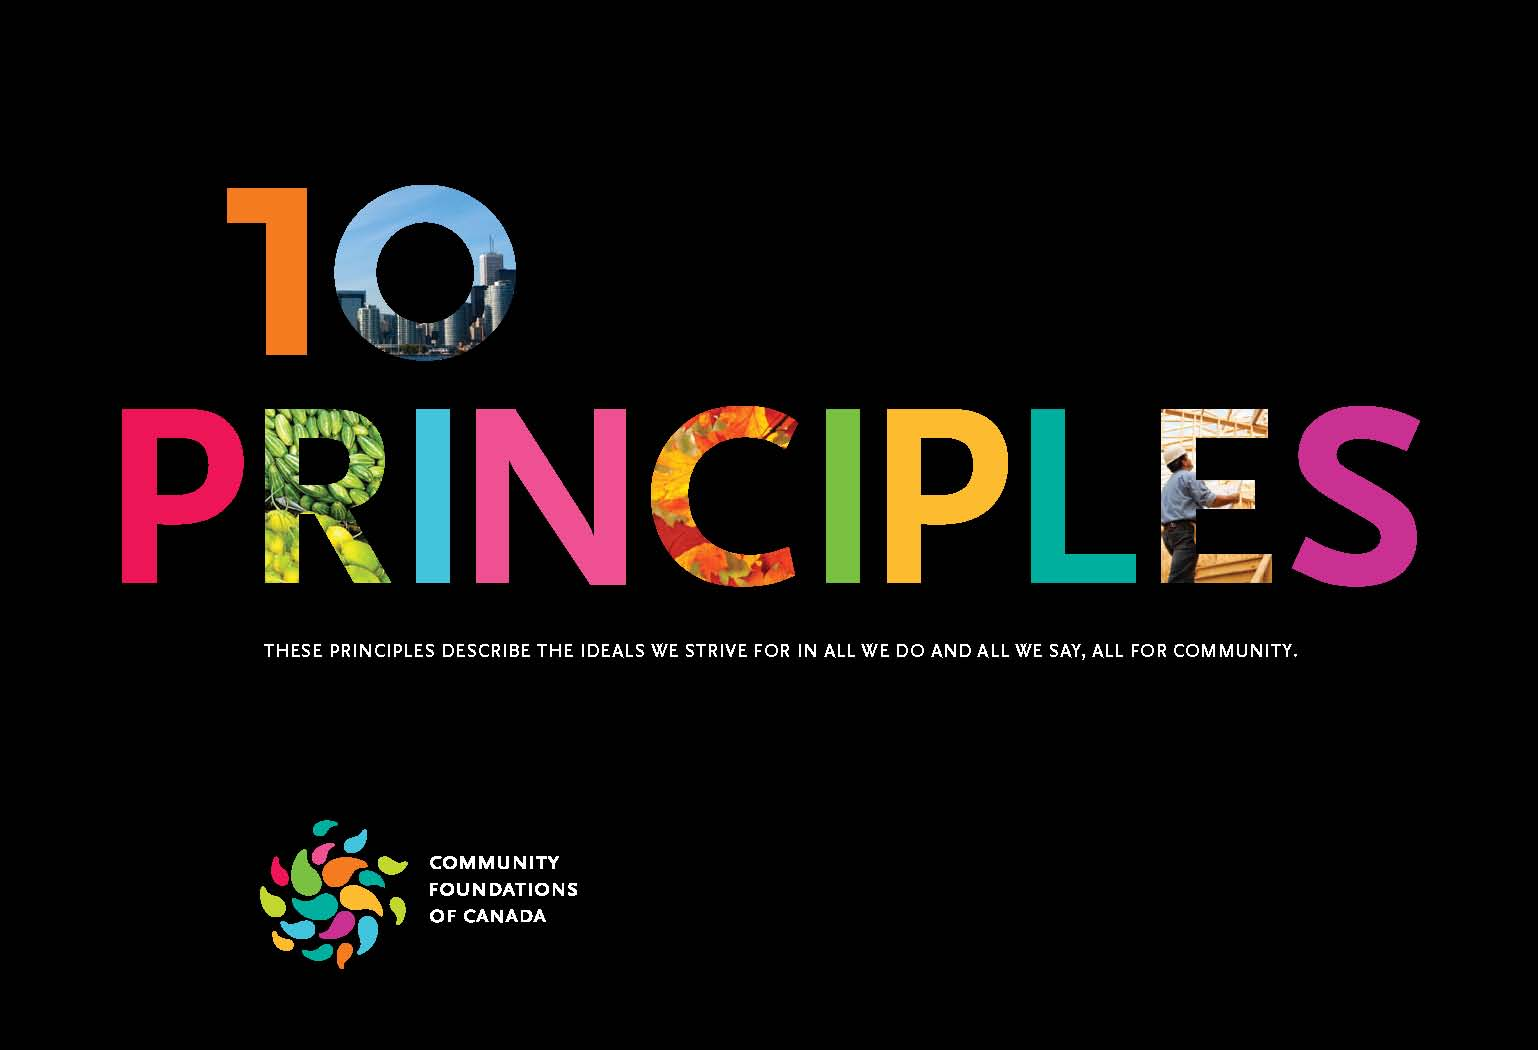 Community Foundations of Canada 10 Principles Brochure